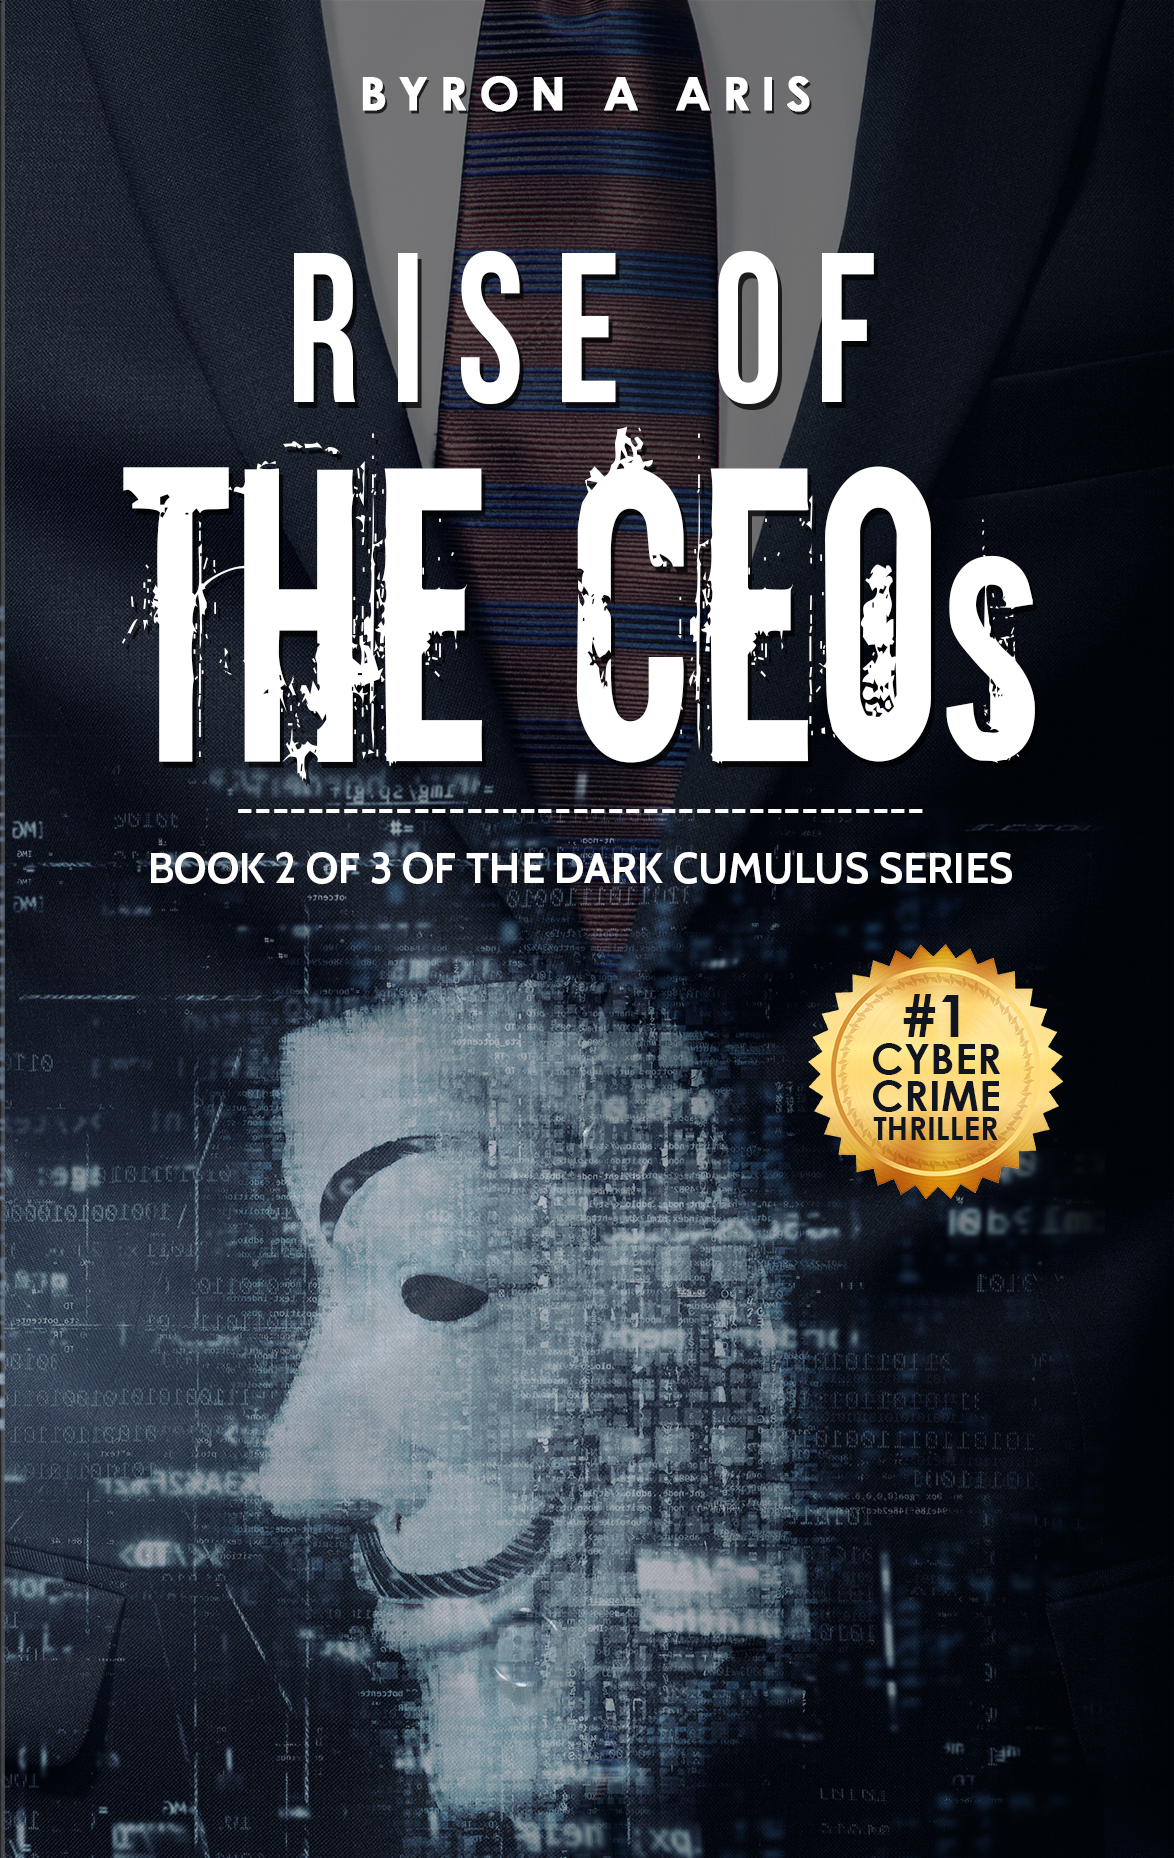 Esteemed Author & Cyber Security Expert Byron A Aris Announces Release of Second Book in Cyber Crime Thriller Series